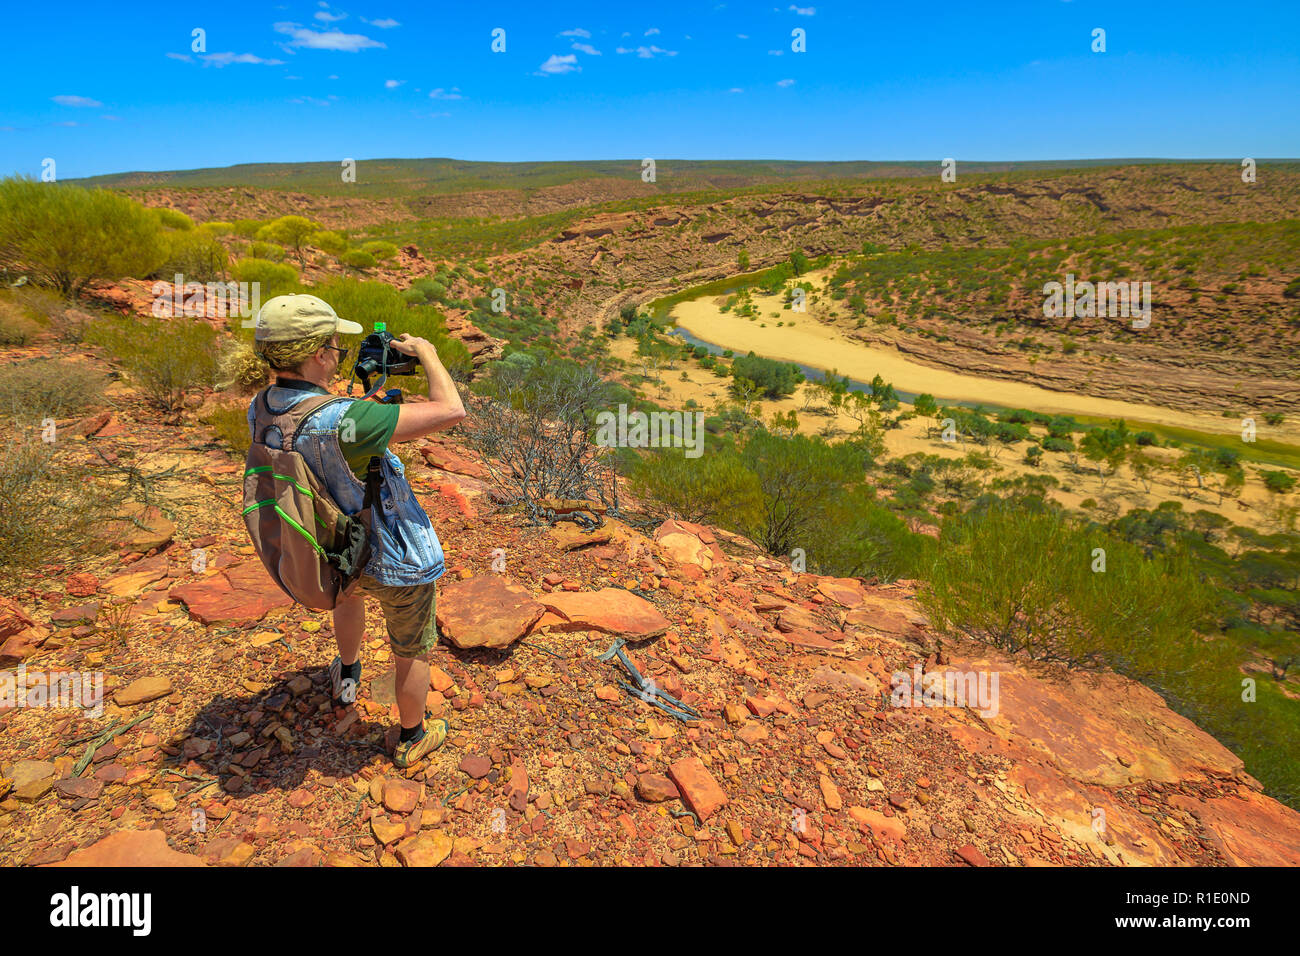 Travel photographer backpacker with stabilizer takes shot at Murchison River Gorge in Kalbarri National Park, Western Australia. Videomaker with professional camera takes photo in Australian outback. - Stock Image